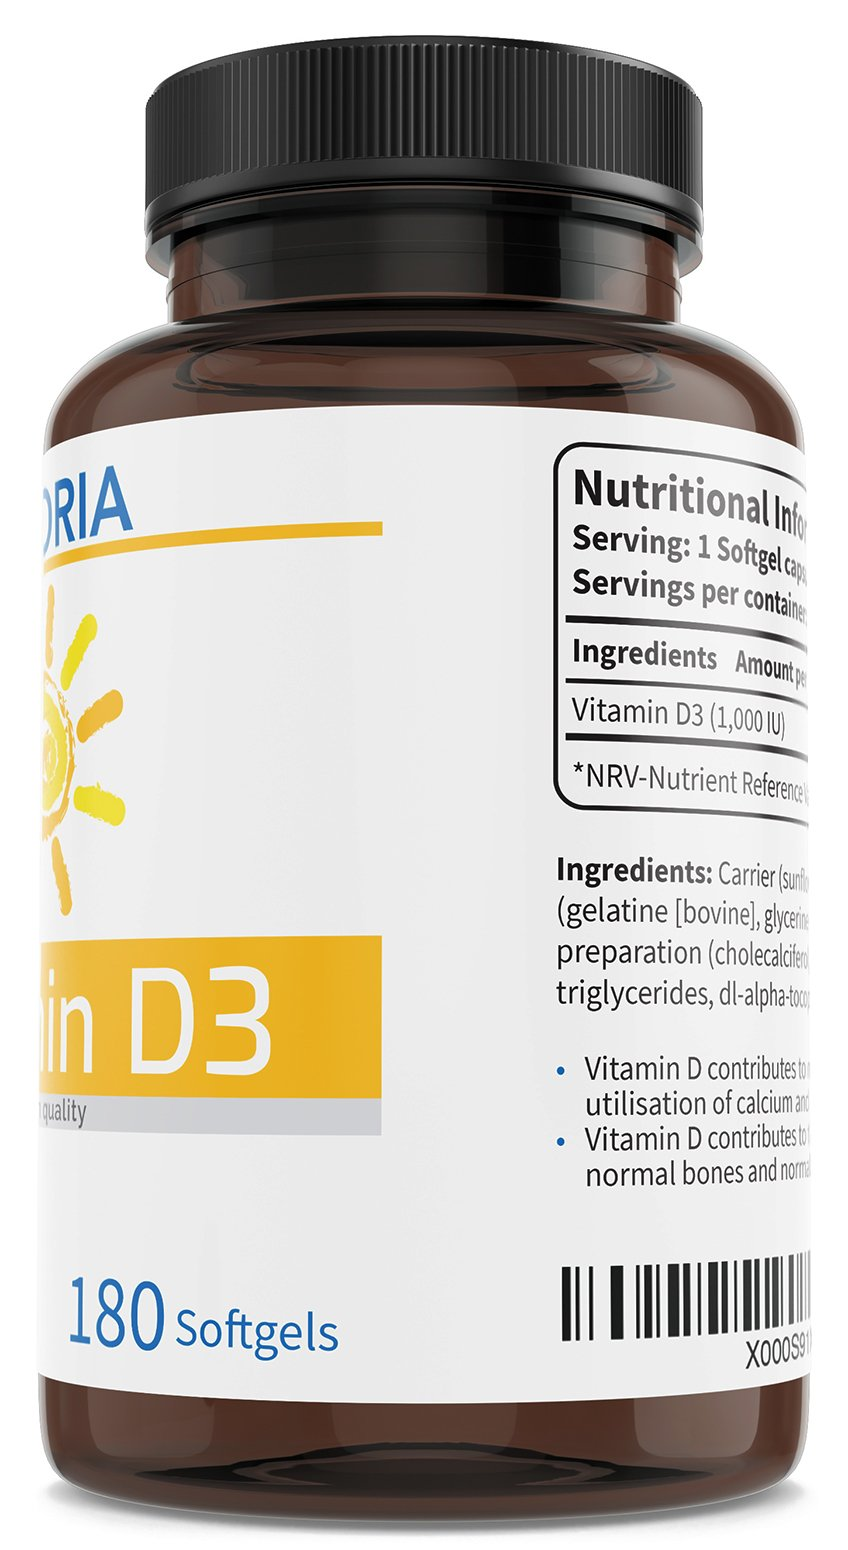 Vitamin D3 1000 IU Optimal Strength 180 Softgels - 6 Month Supply - Food Supplement for Immune Support, Healthy Joints, Muscles, and Strong Bones and Teeth - Non-GMO - Allergen-Free | Made in The UK